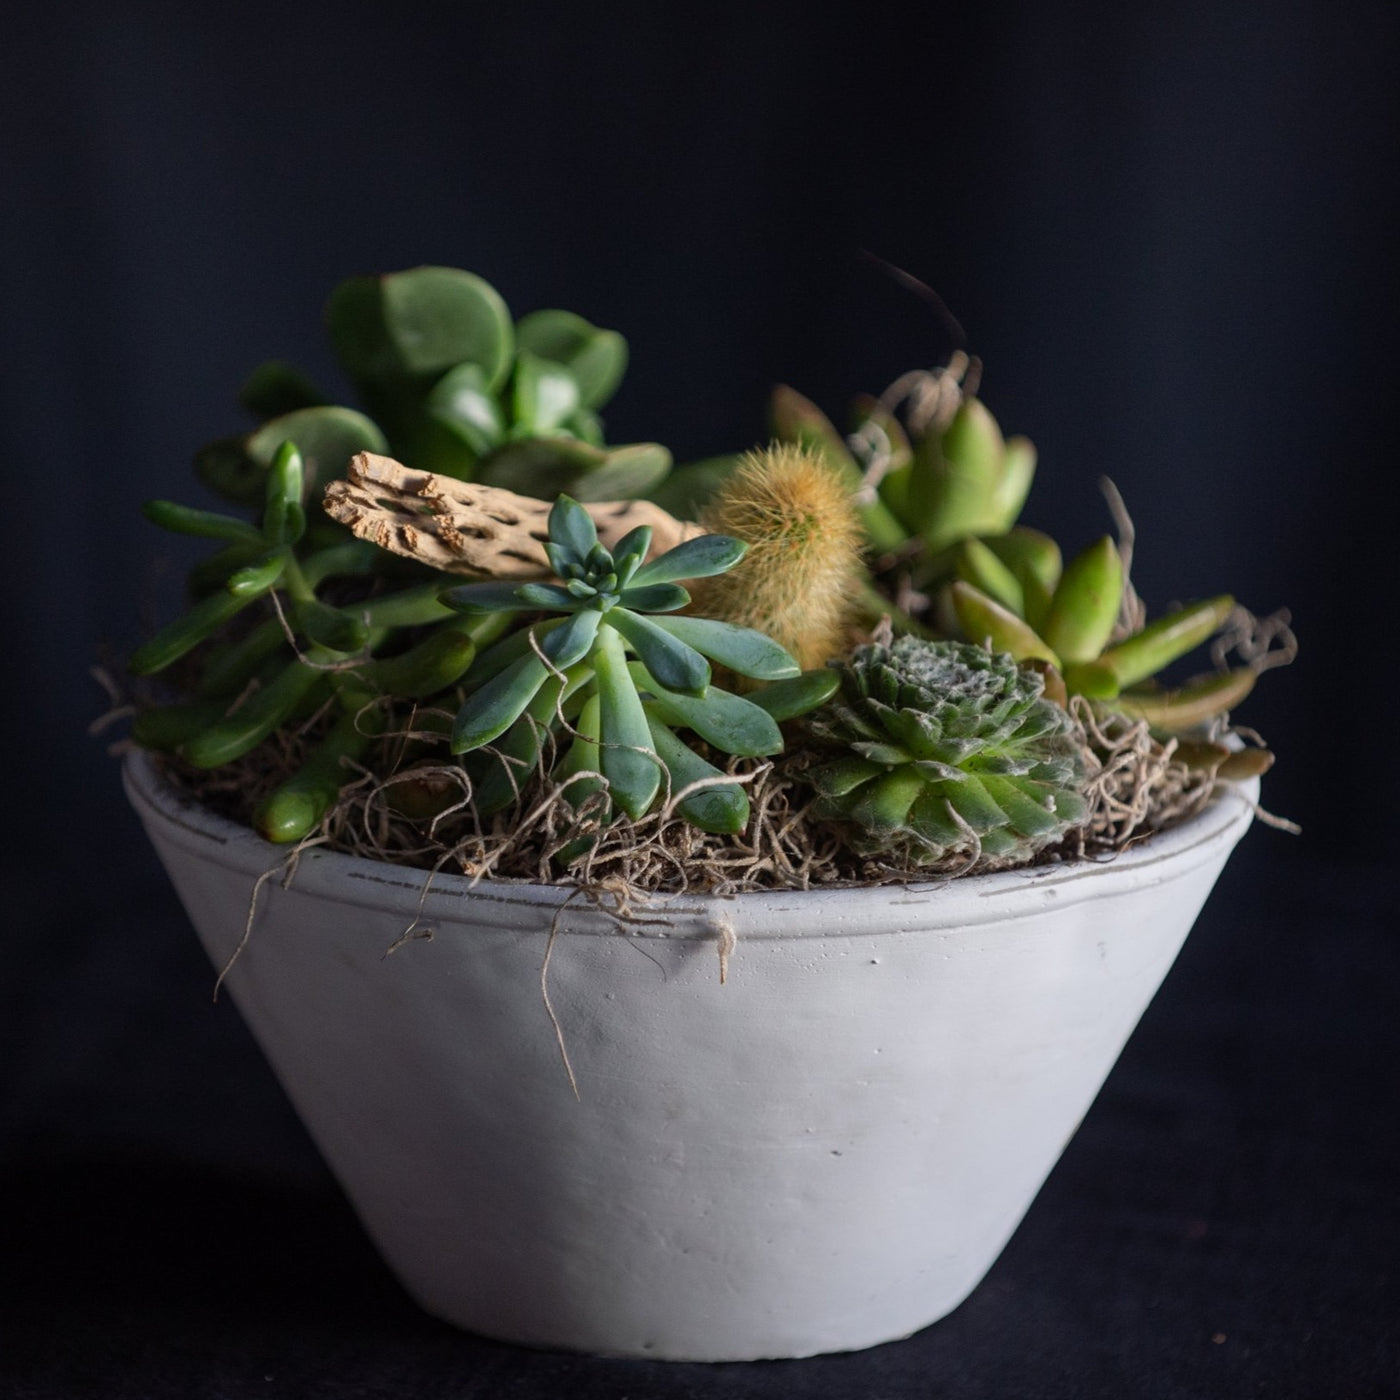 Standard Desert Terrarium is a small bowl filled with succulents and cactus